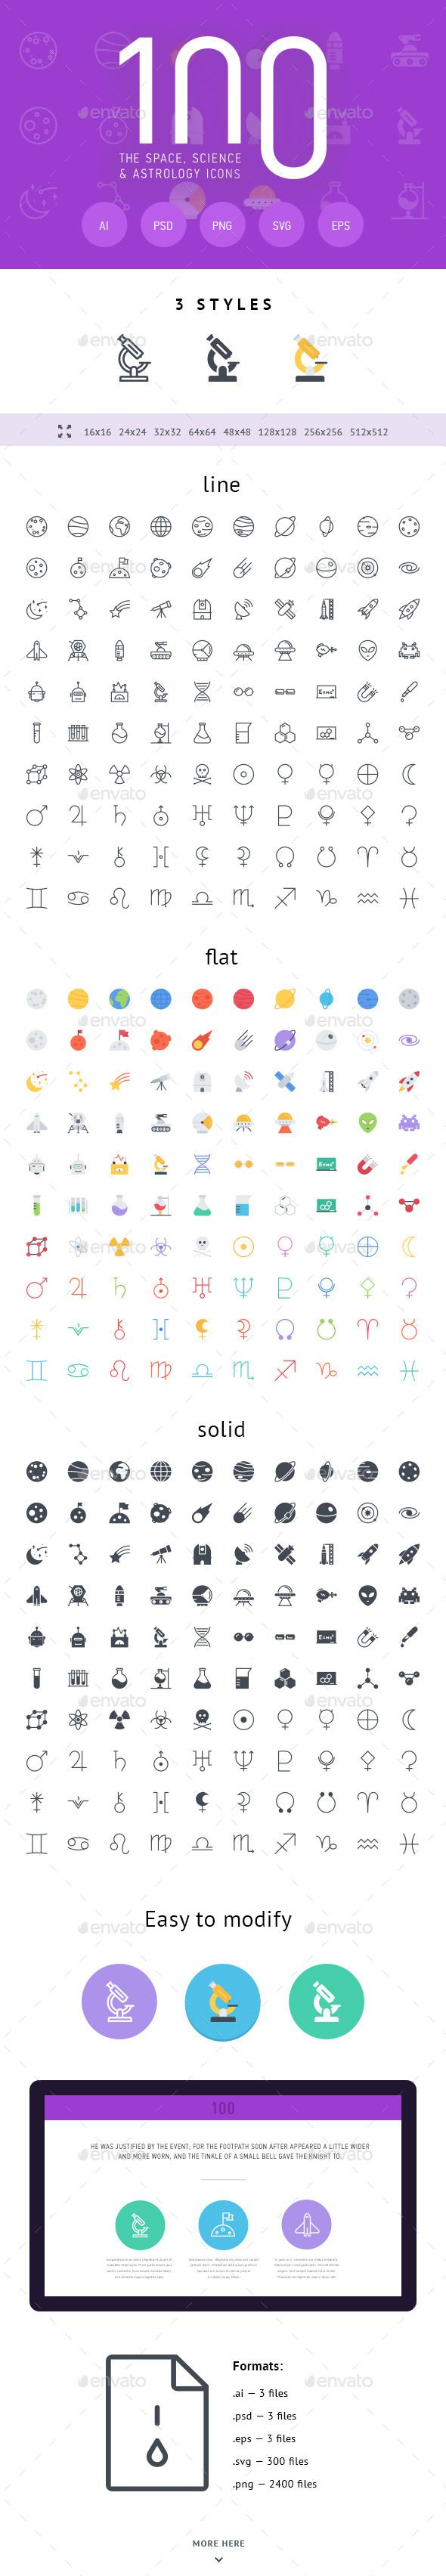 The Space, Science & Astrology Icons 100 — Photoshop PSD #planets #planets icons • Available here → https://graphicriver.net/item/the-space-science-astrology-icons-100/11335624?ref=pxcr